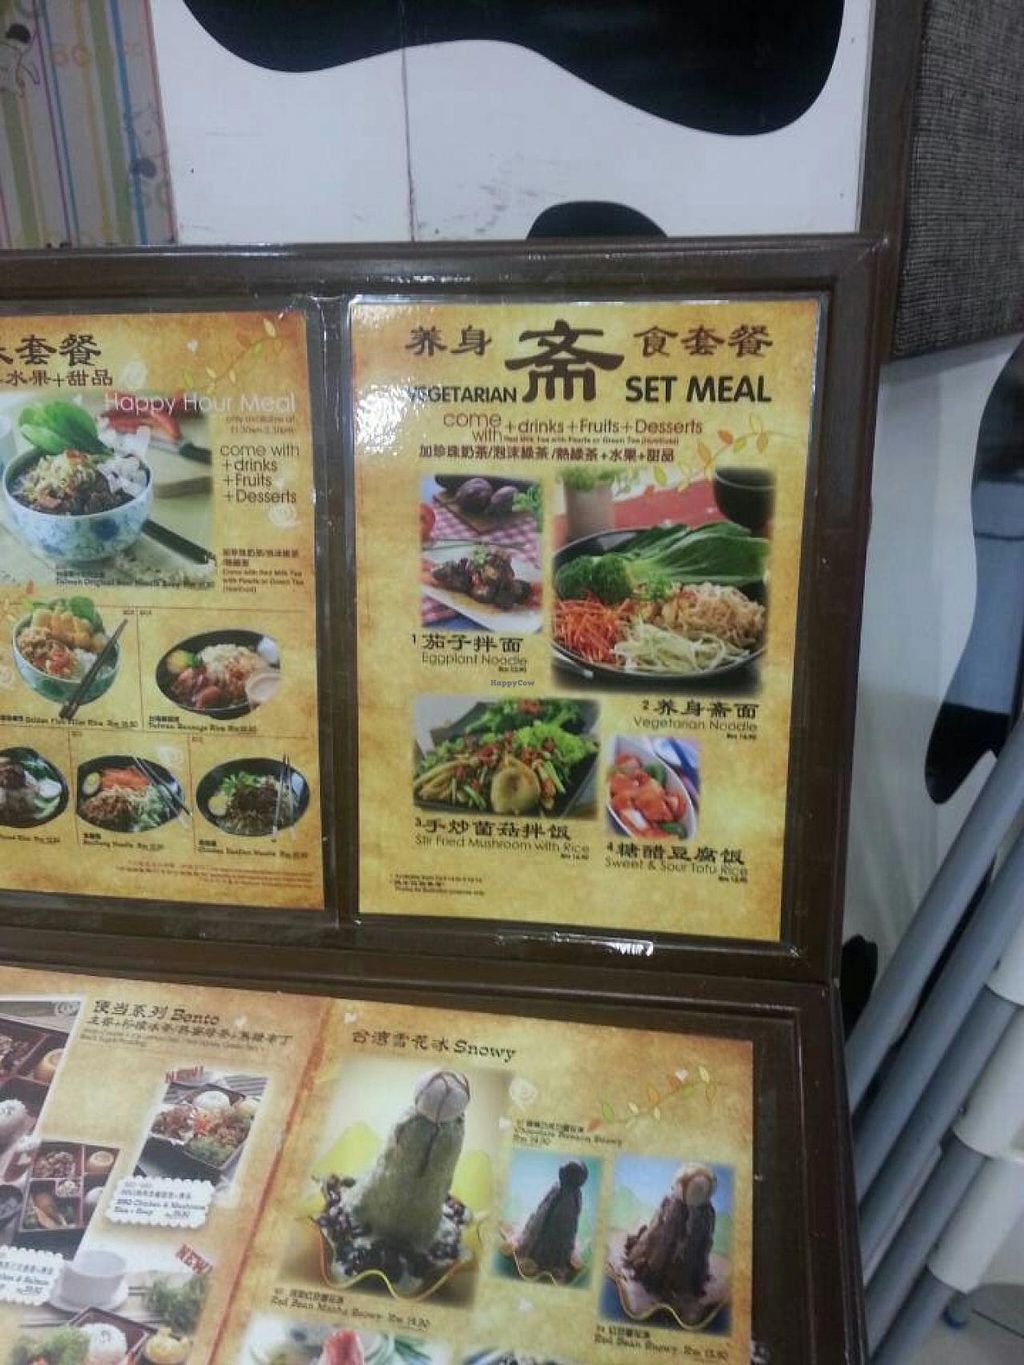 """Photo of 600CC Taiwanese Restaurant  by <a href=""""/members/profile/walter007"""">walter007</a> <br/>Menu <br/> November 28, 2014  - <a href='/contact/abuse/image/53302/86662'>Report</a>"""